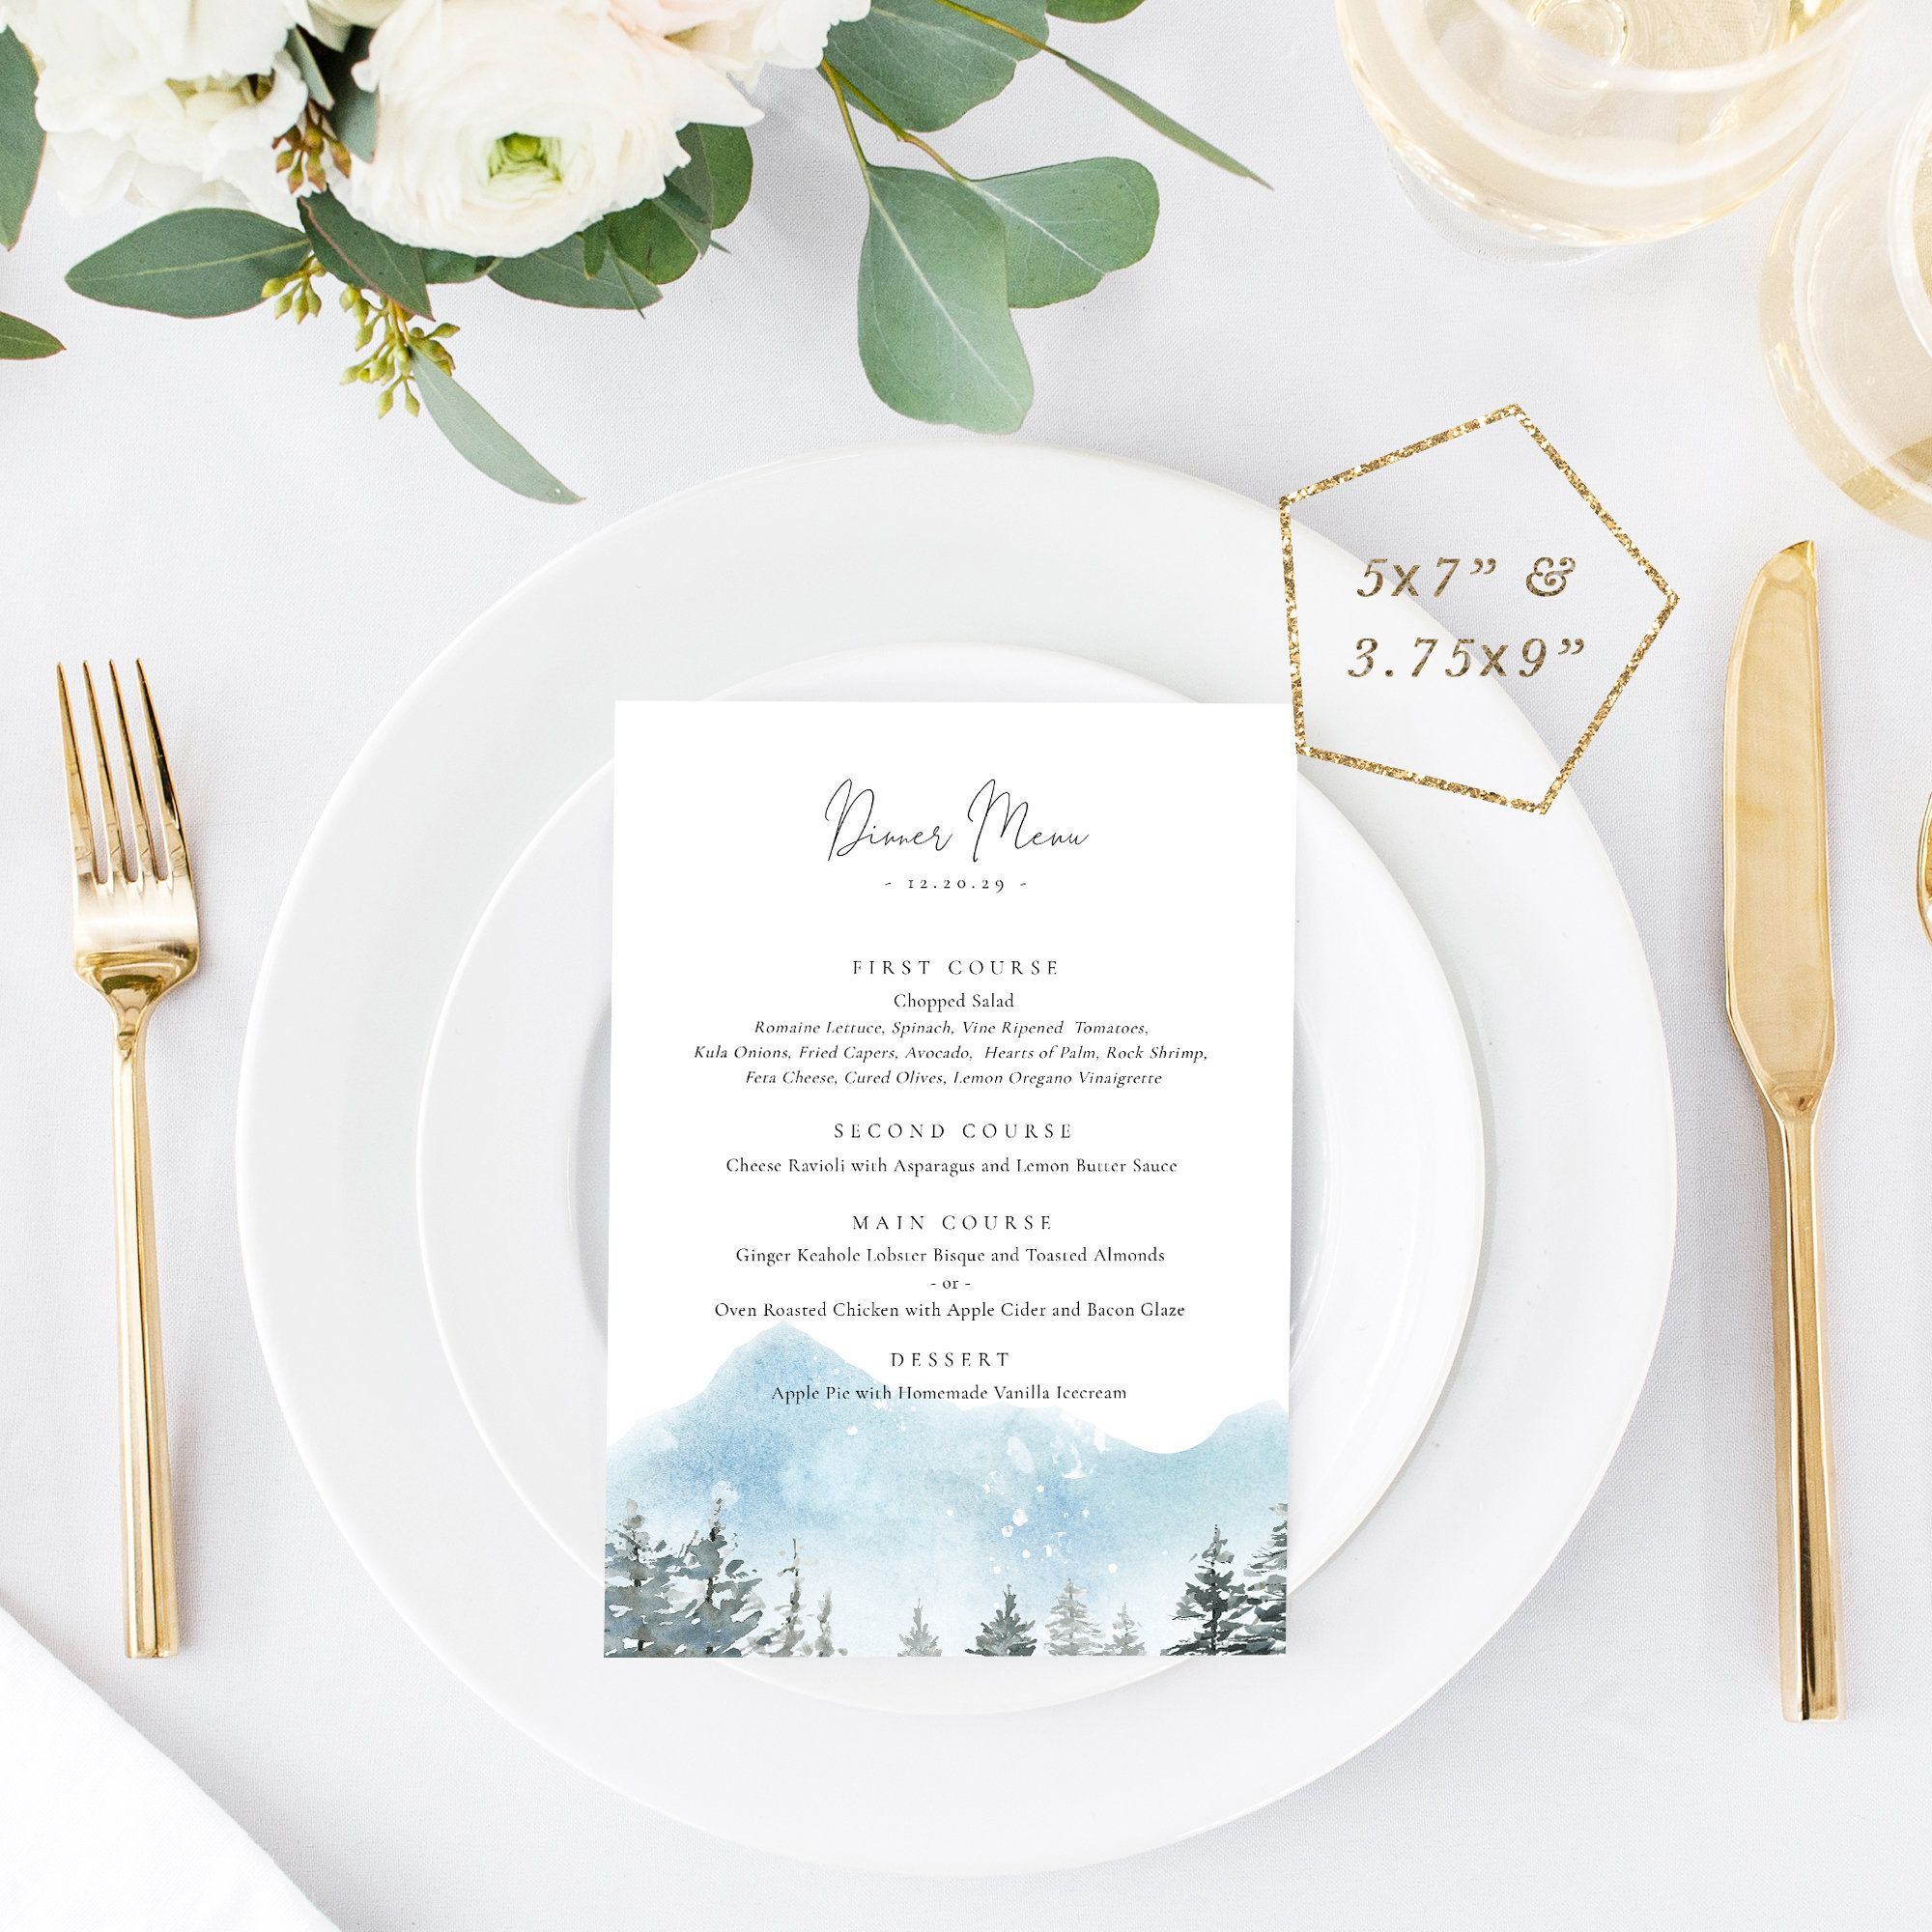 001 Excellent Dinner Party Menu Template Sample  Card Free Italian WordFull